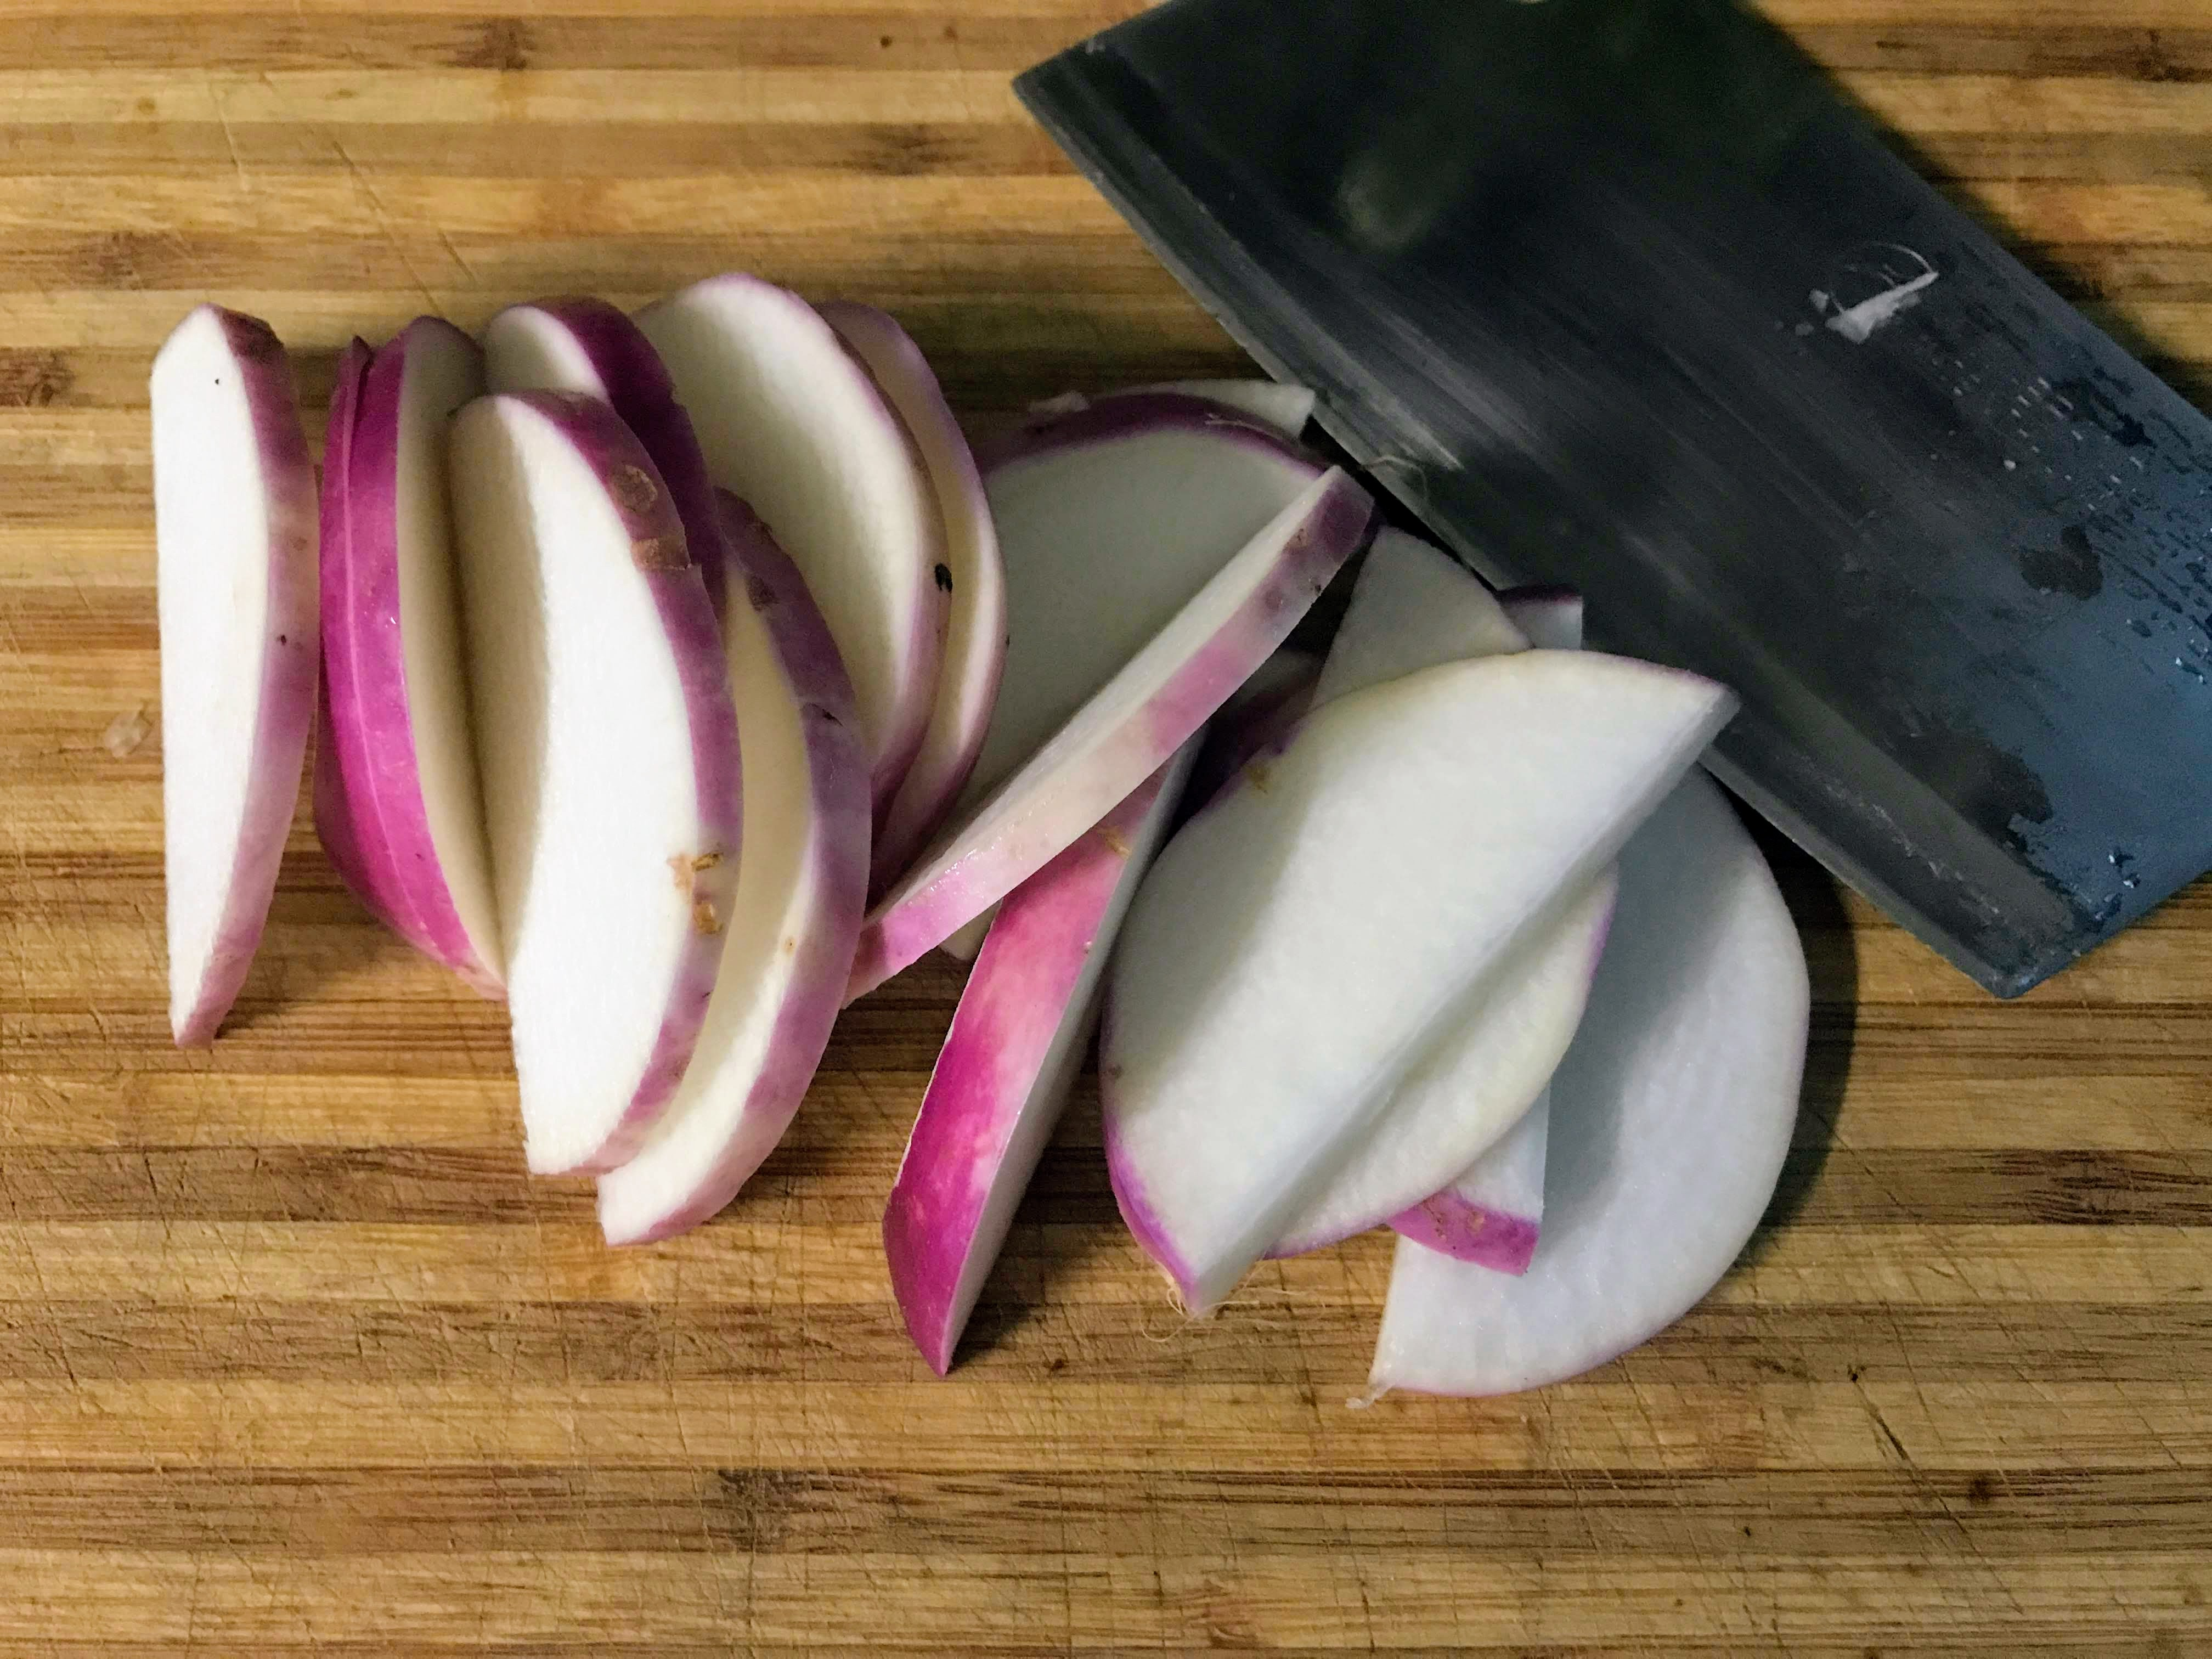 slice turnips on cutting board with knife